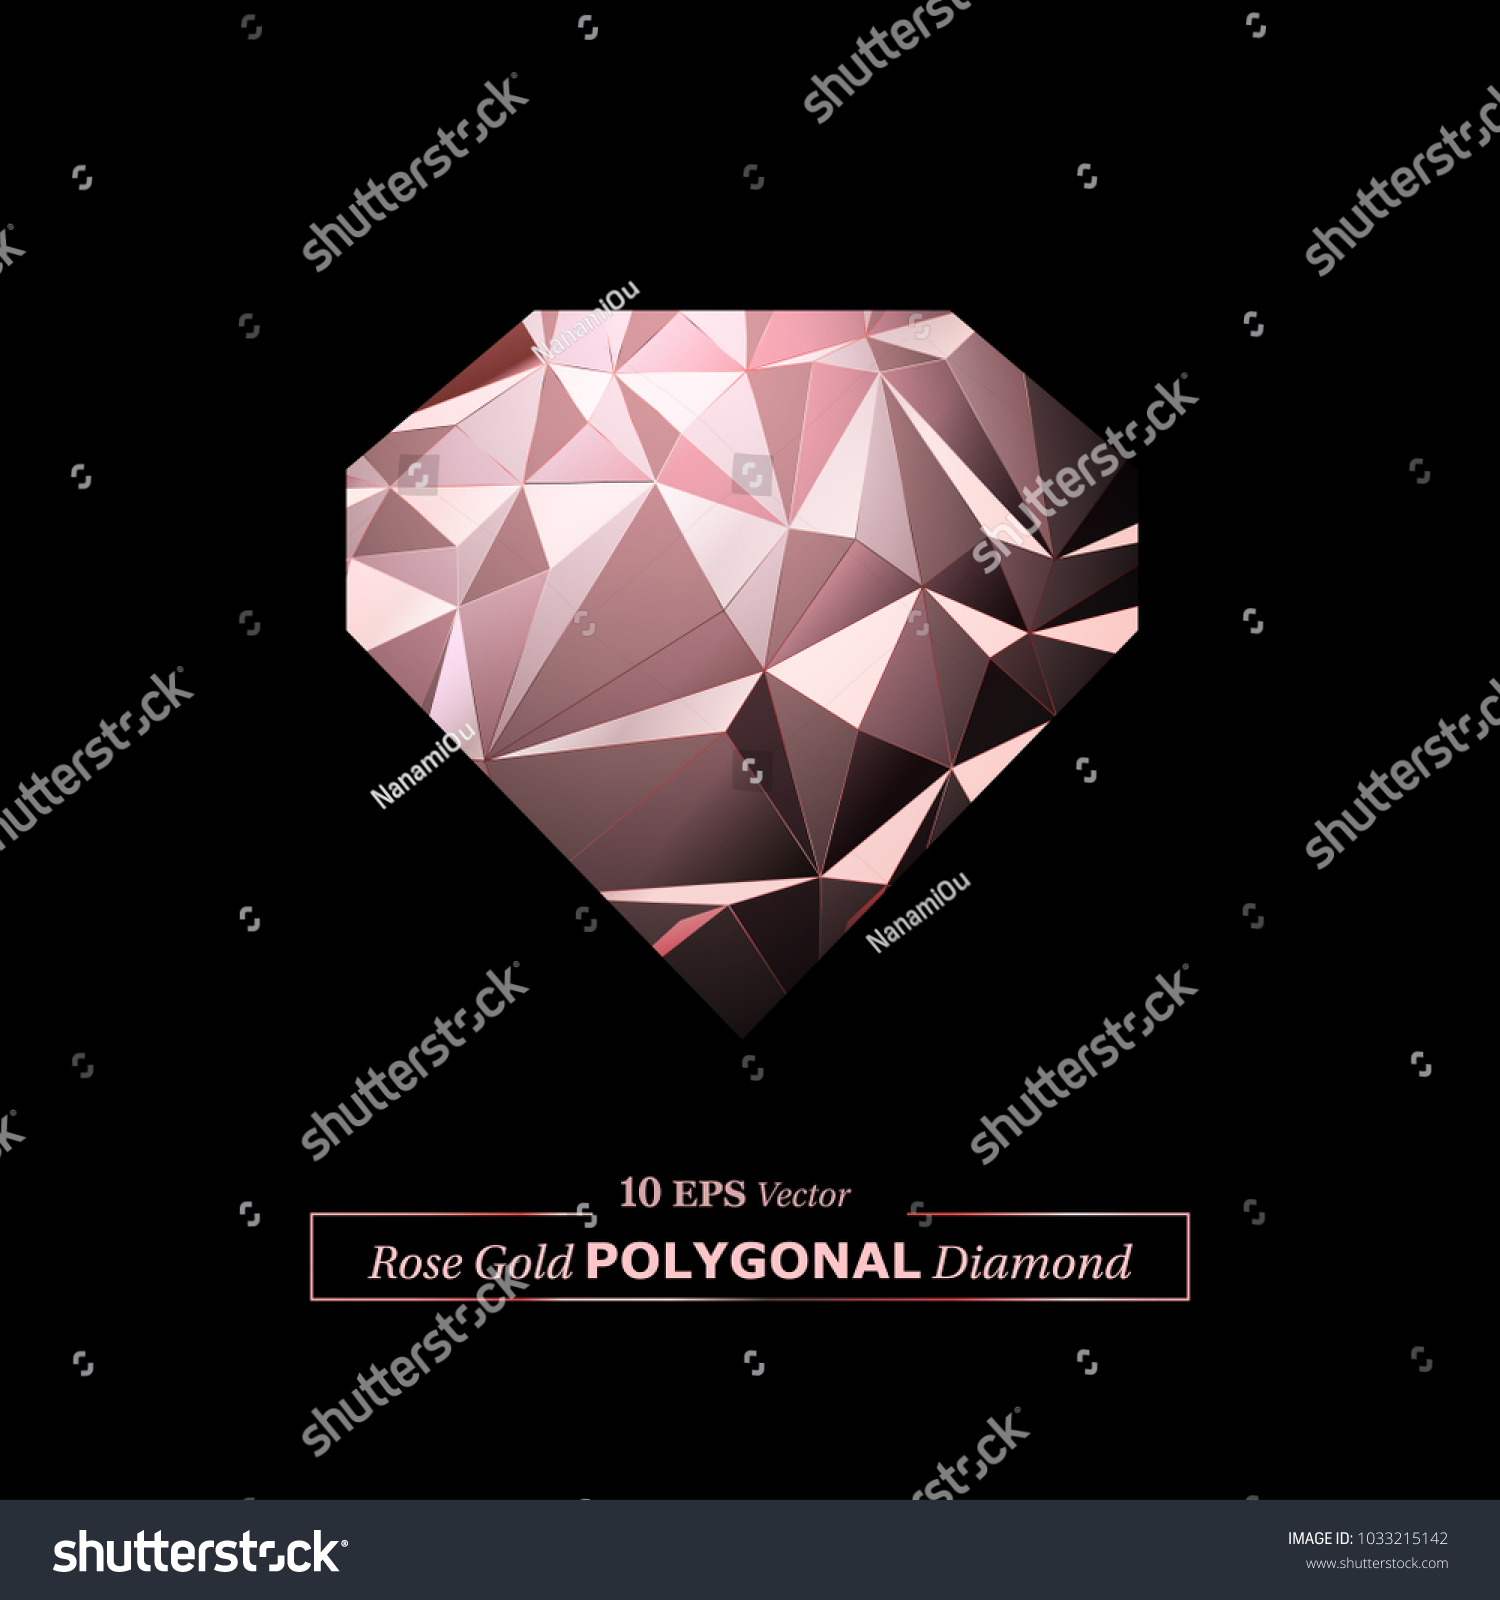 shape for work products misty carat code custom polygon diamond heptagon celestial inventory